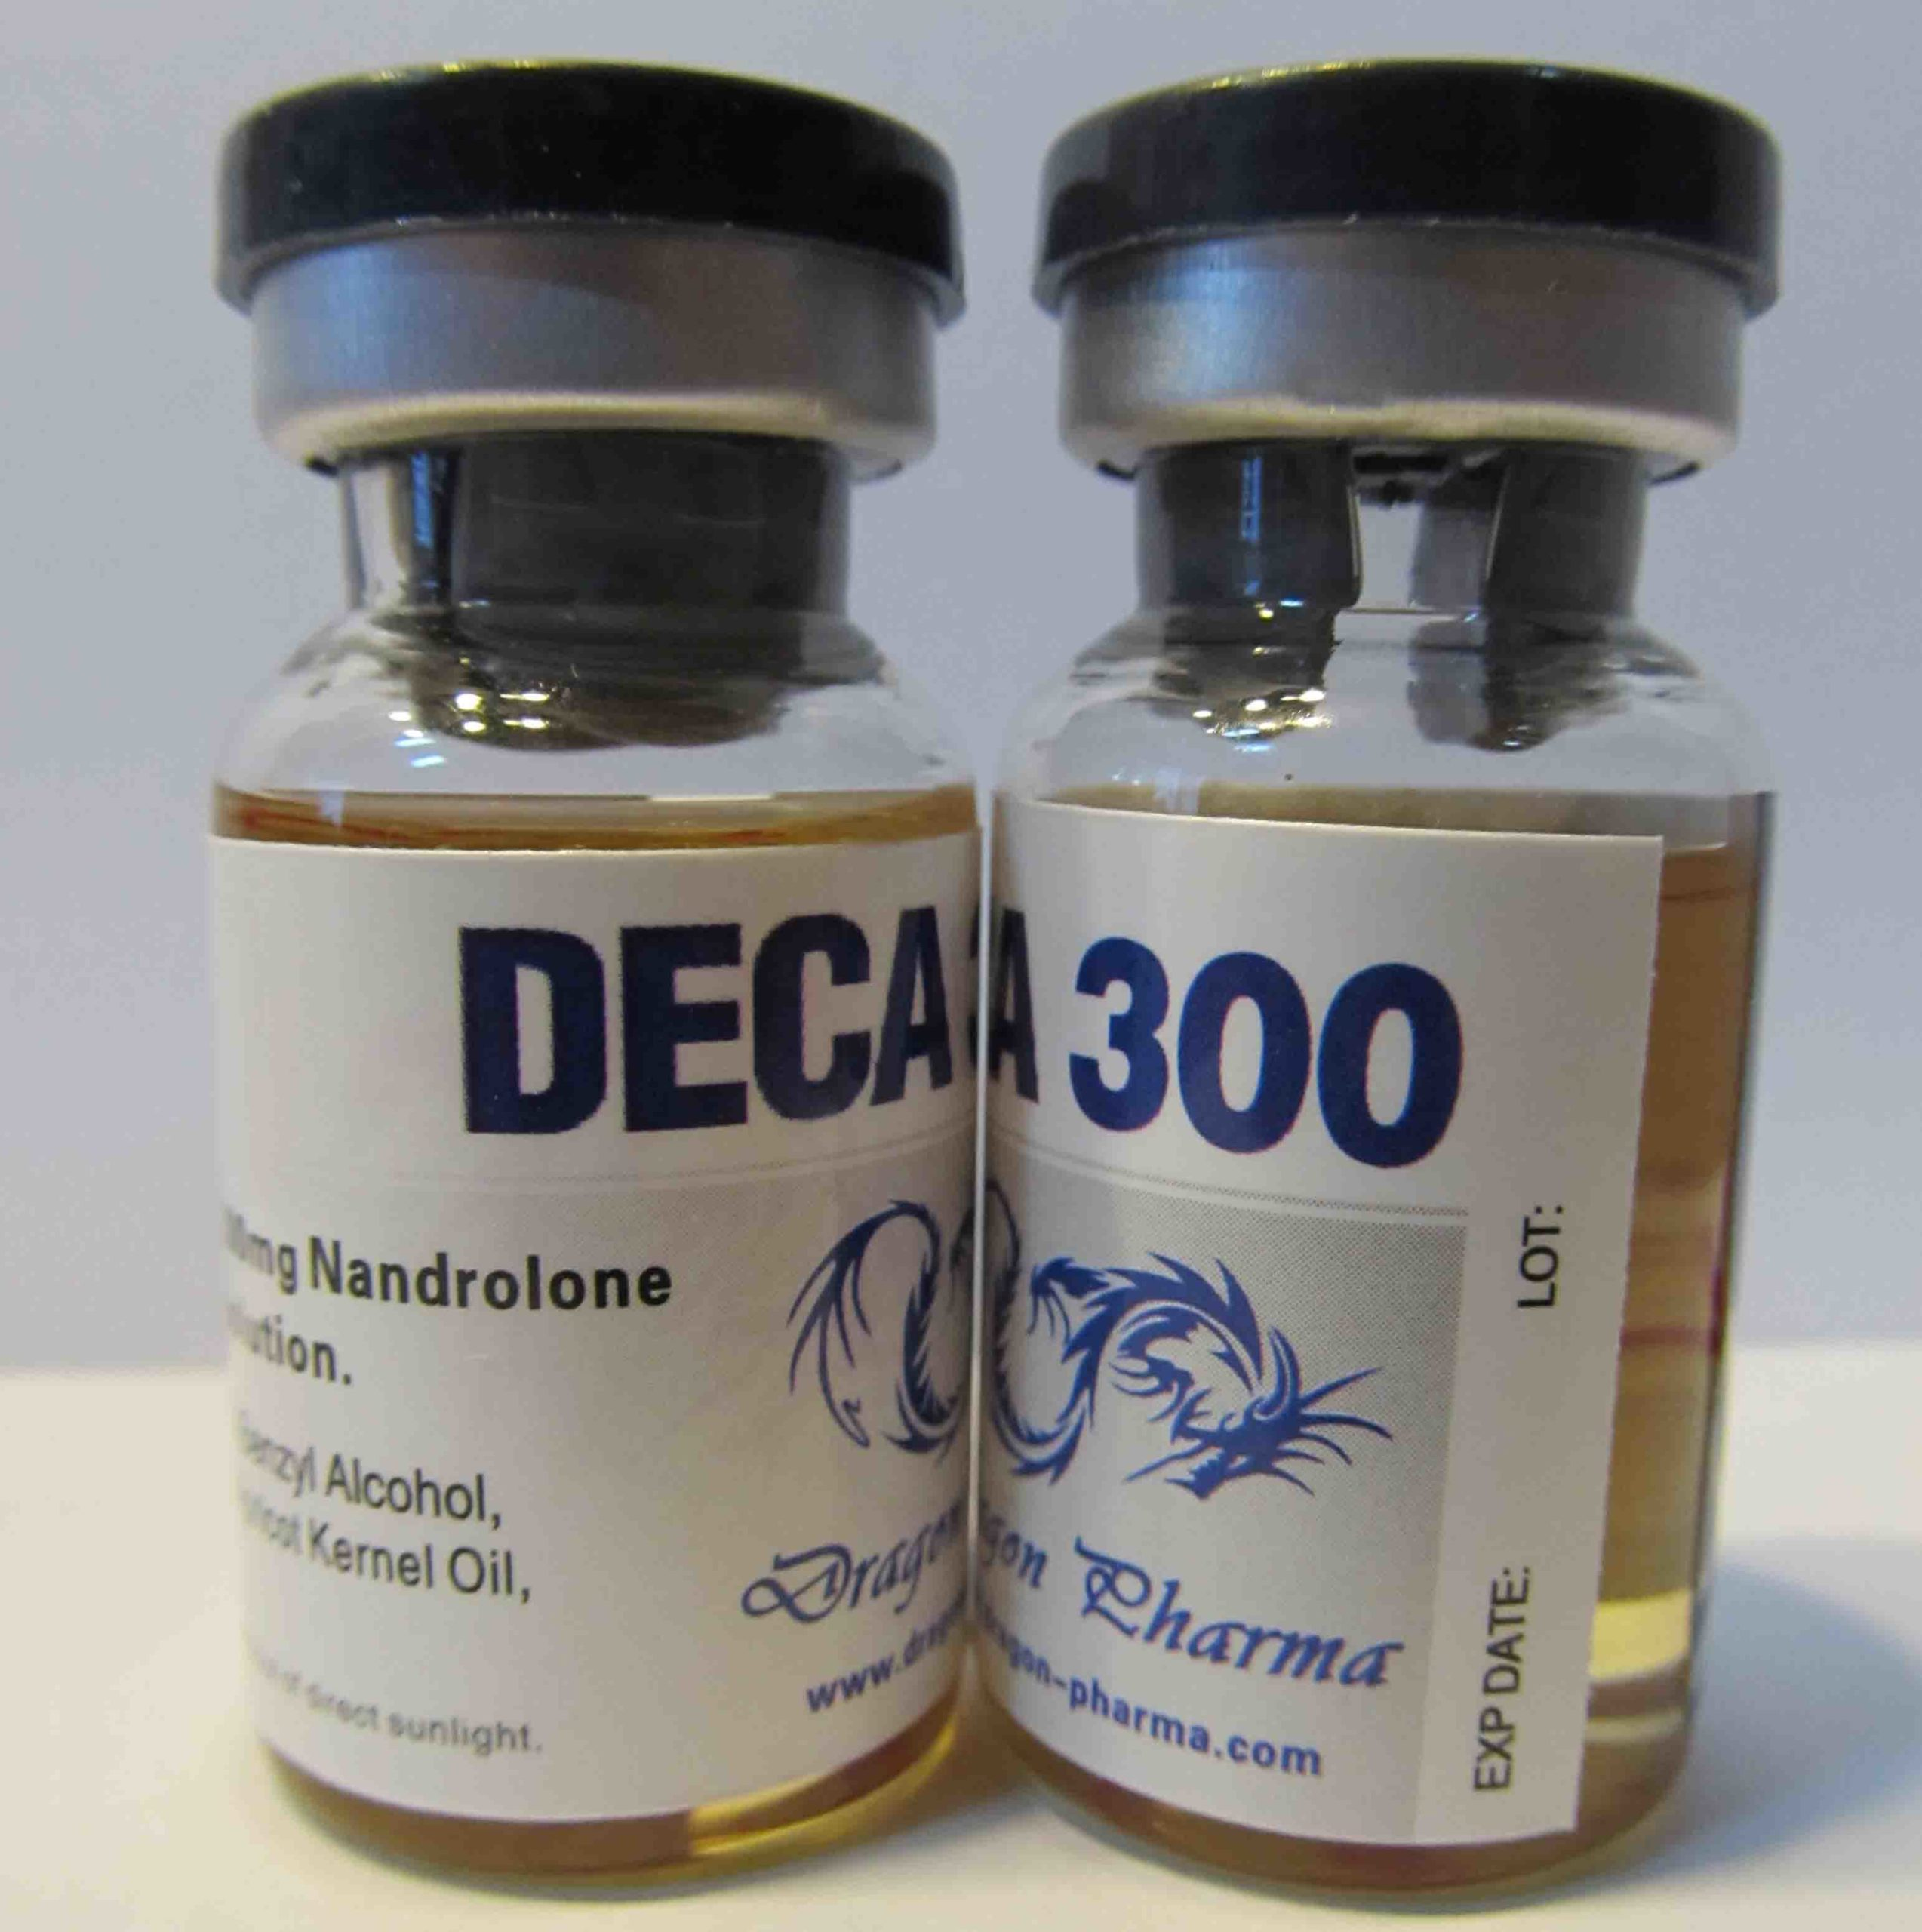 Deca 300 Dragon Pharma 10ml vial (300mg/ml)